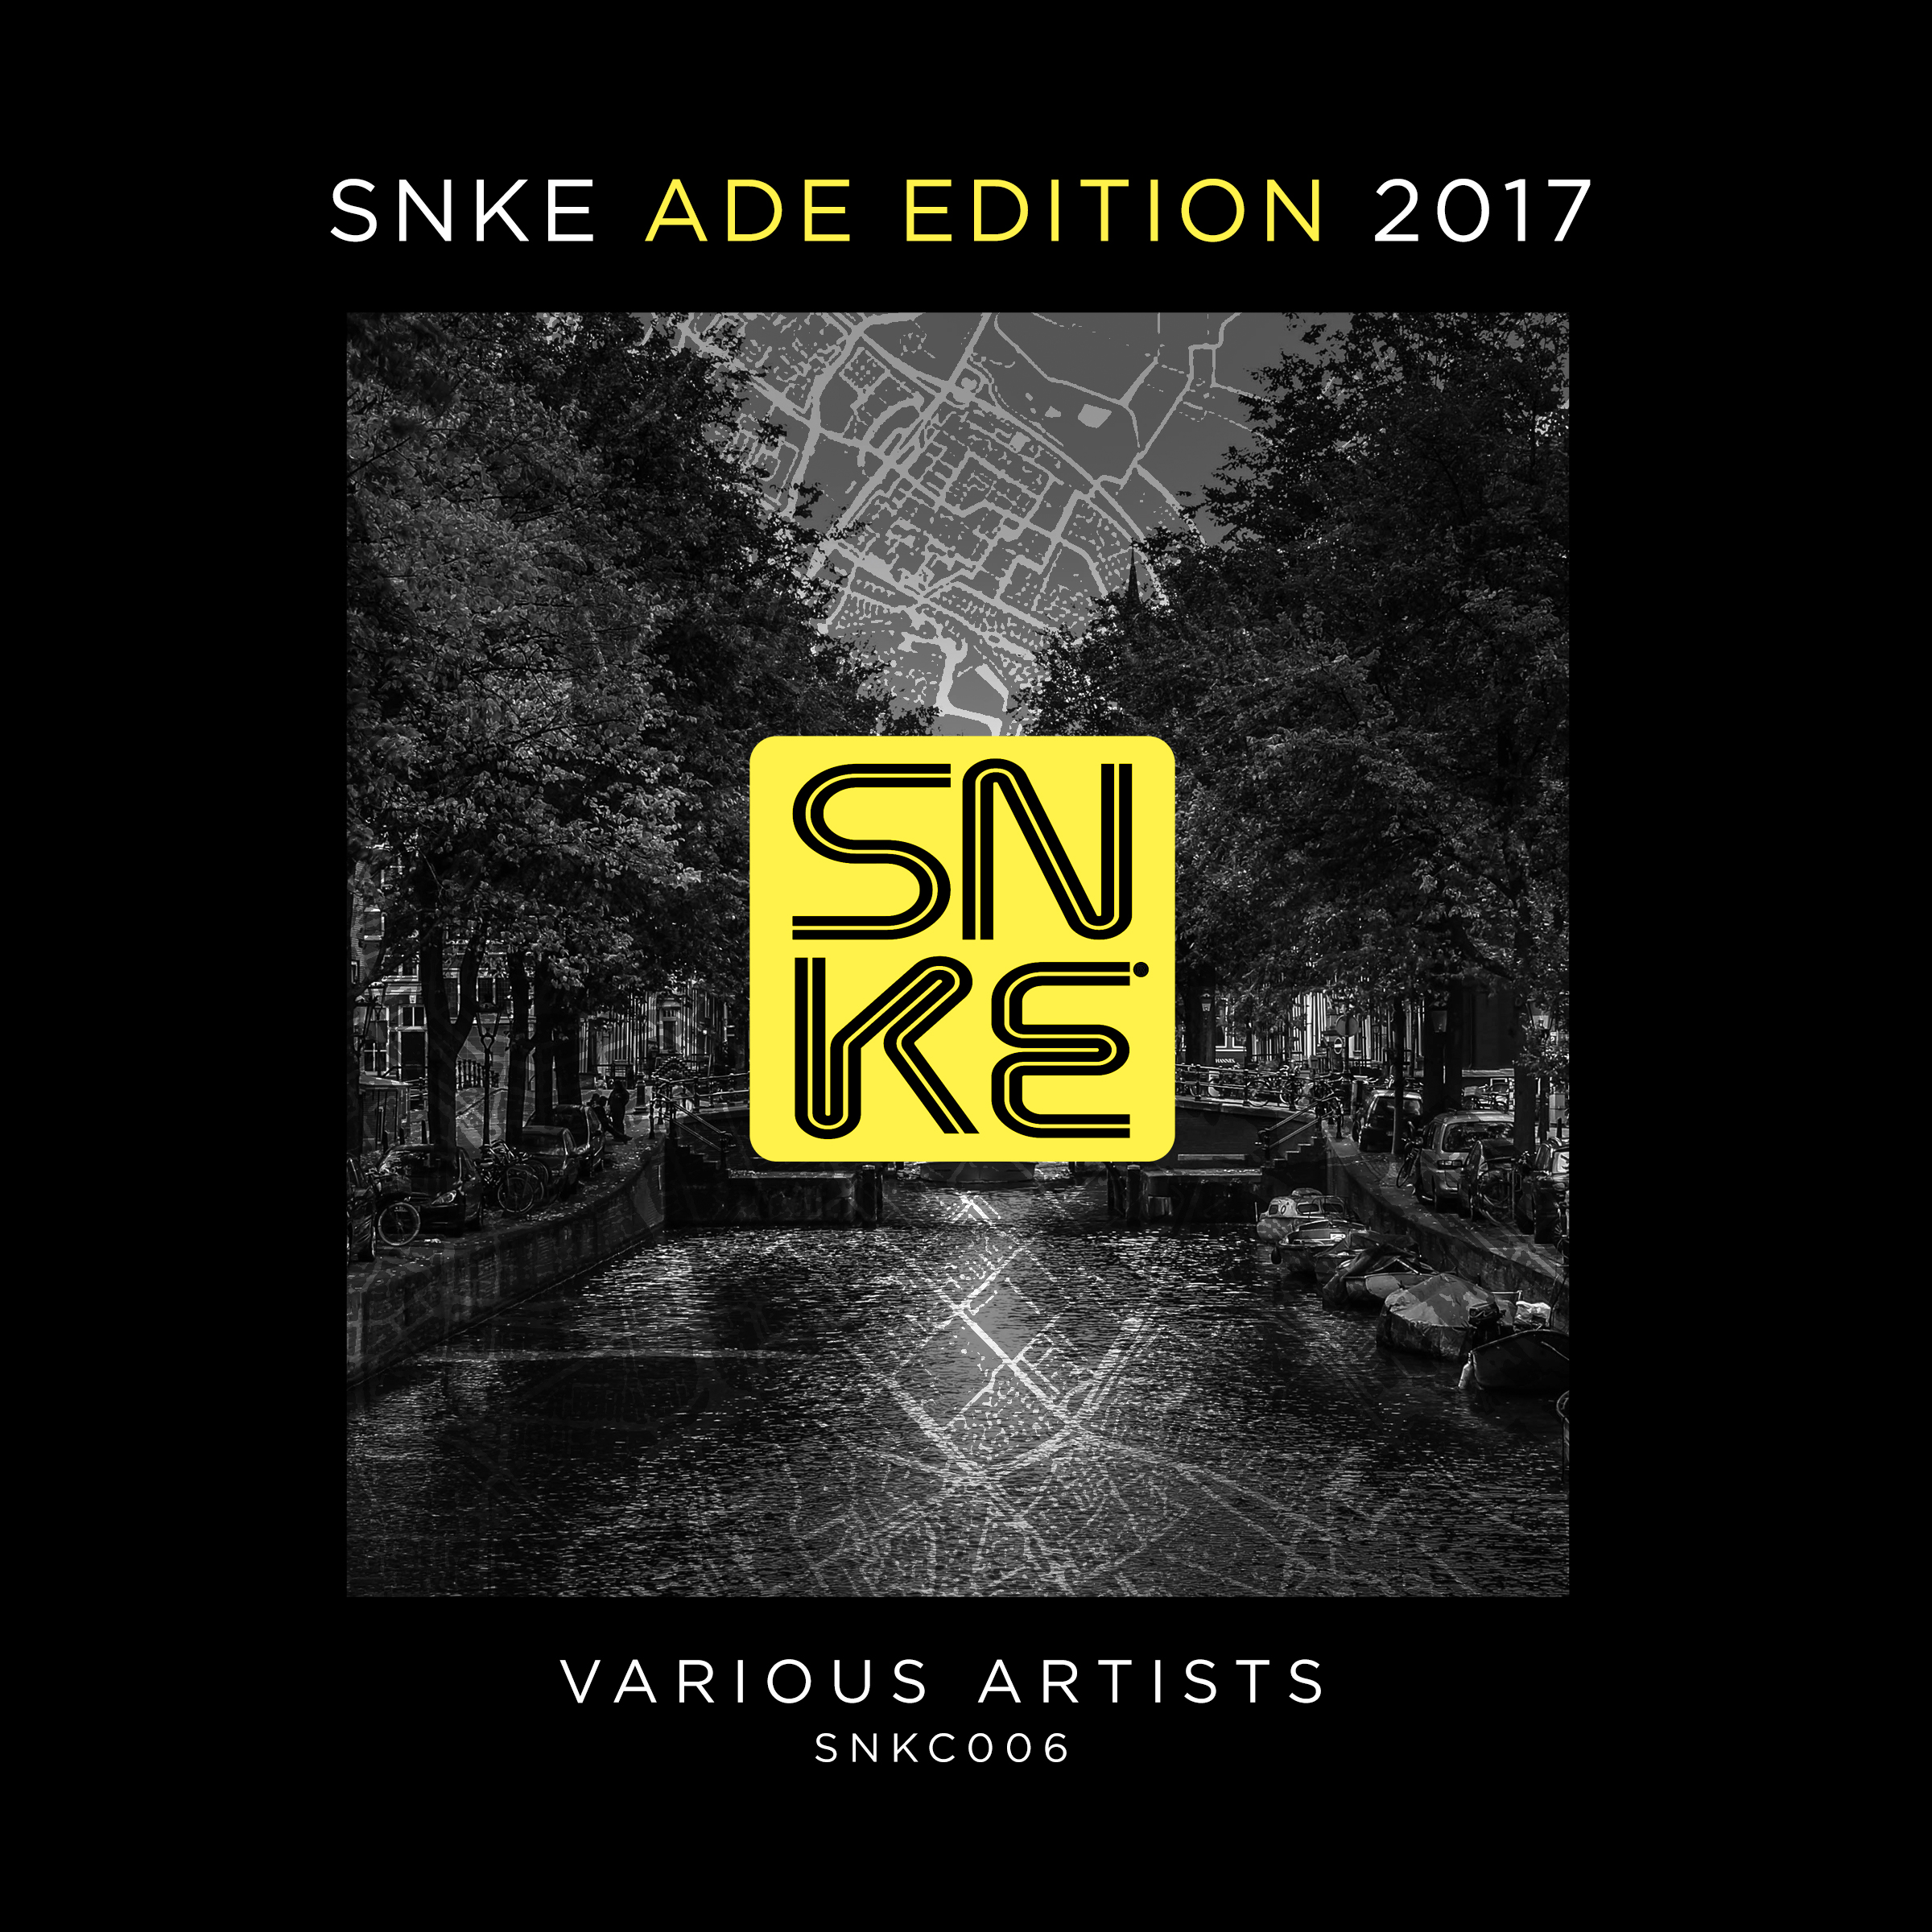 Various Artists - SNKE ADE Edition 2017 Cover